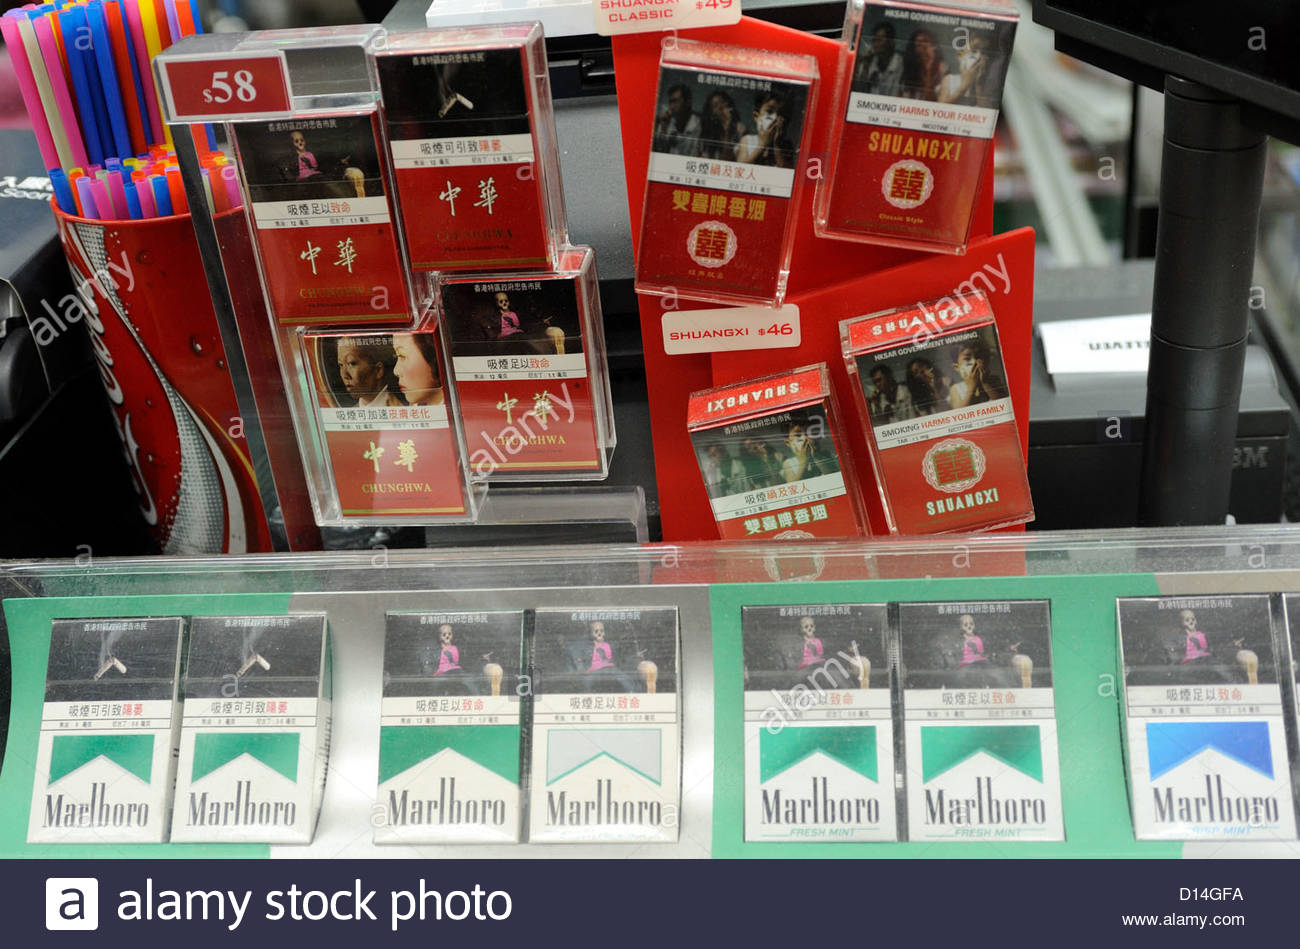 How to get cheap cigarettes in London